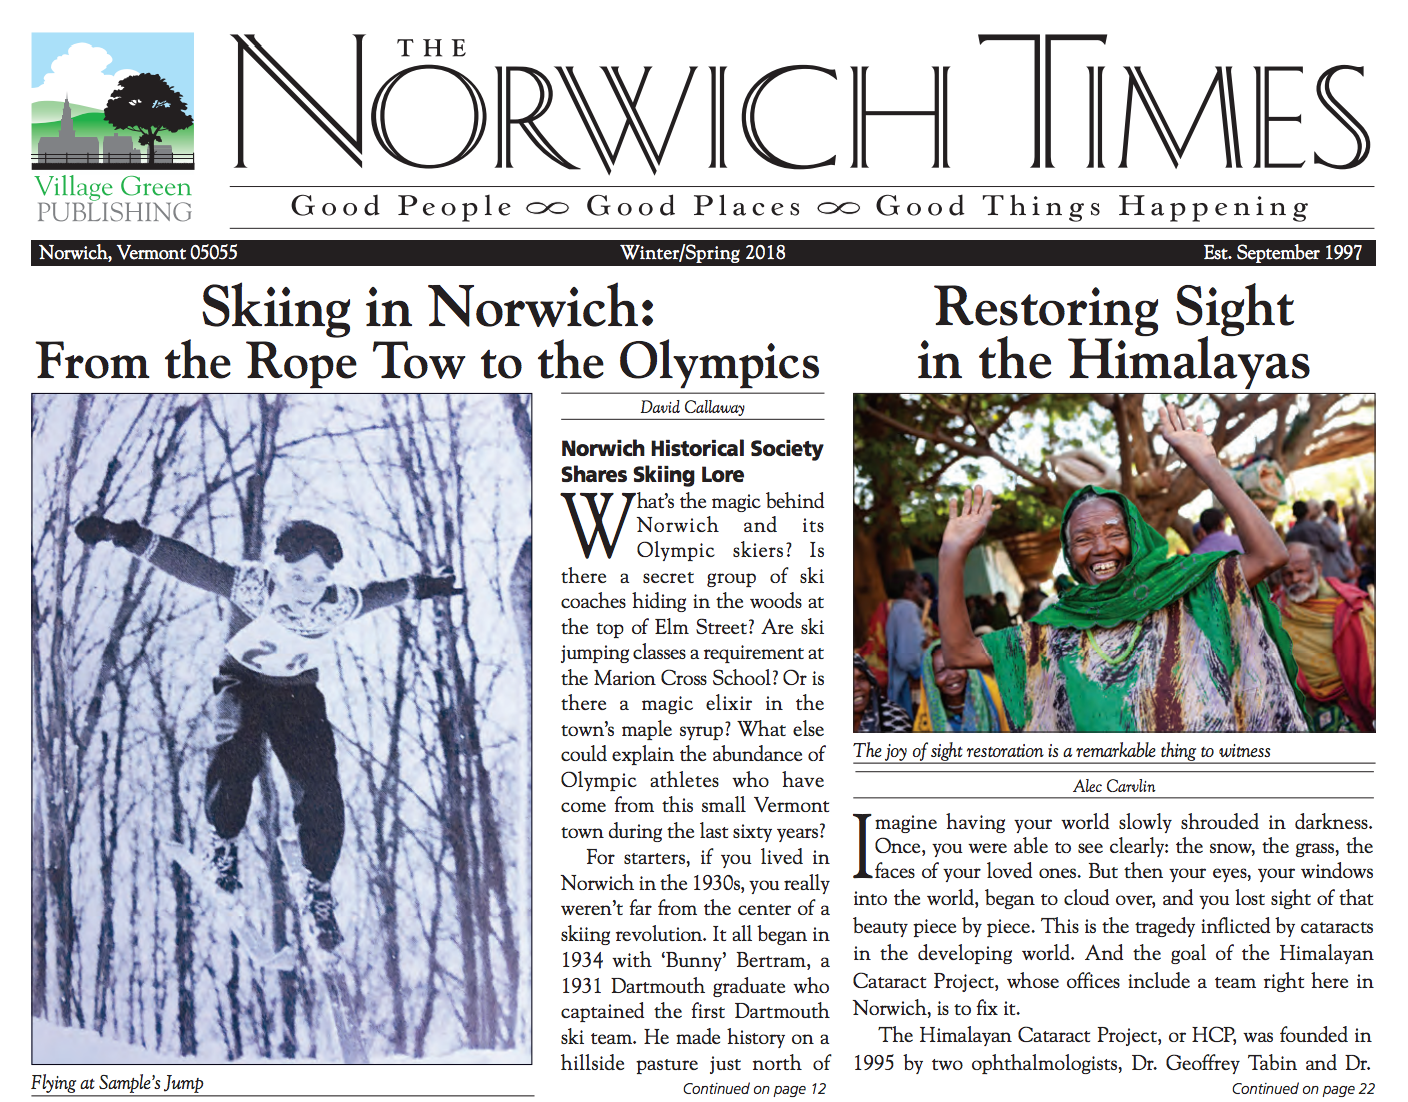 The Norwich Times